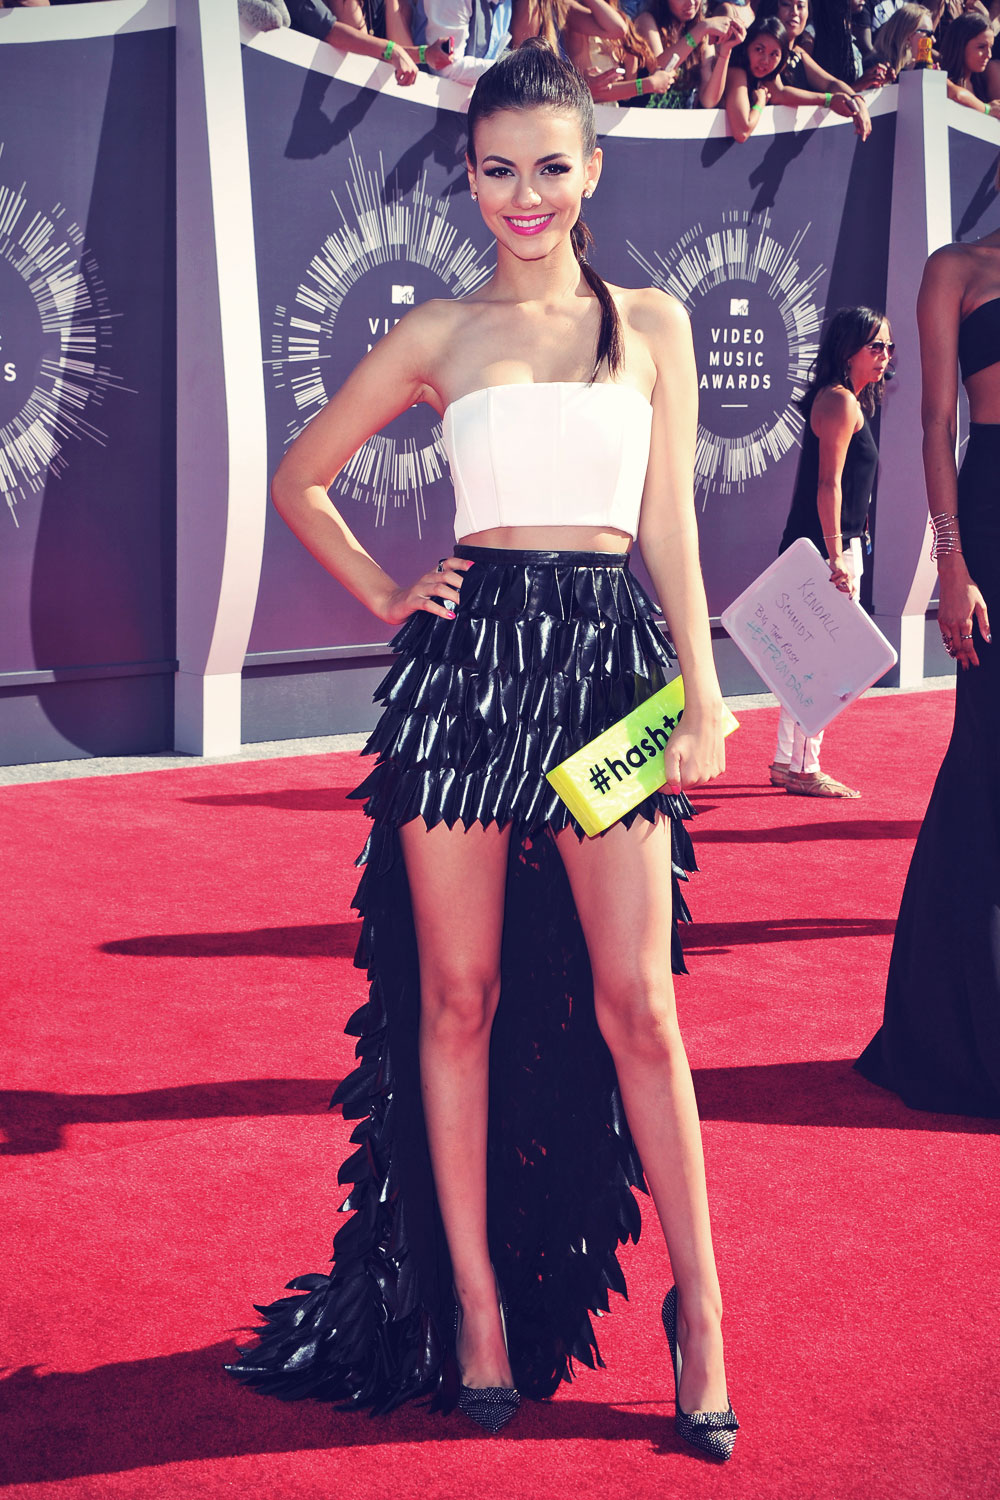 Victoria Justice attends 2014 MTV Video Music Awards